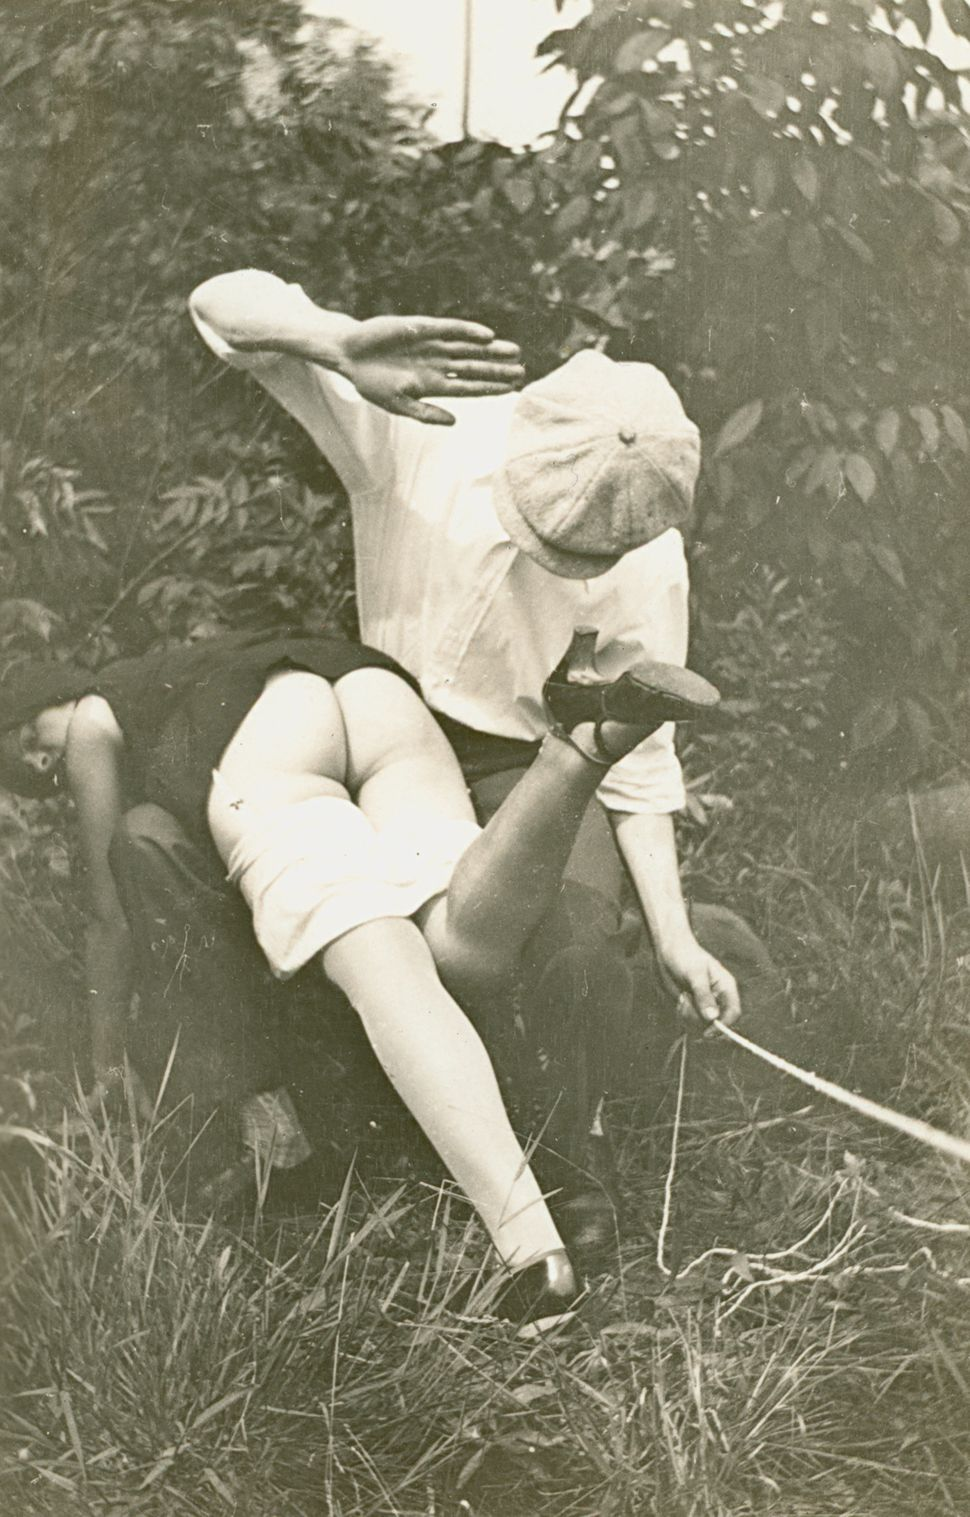 Untitled Self-Portrait of Outdoor Spanking Couple. Collection of Mark Rotenberg.